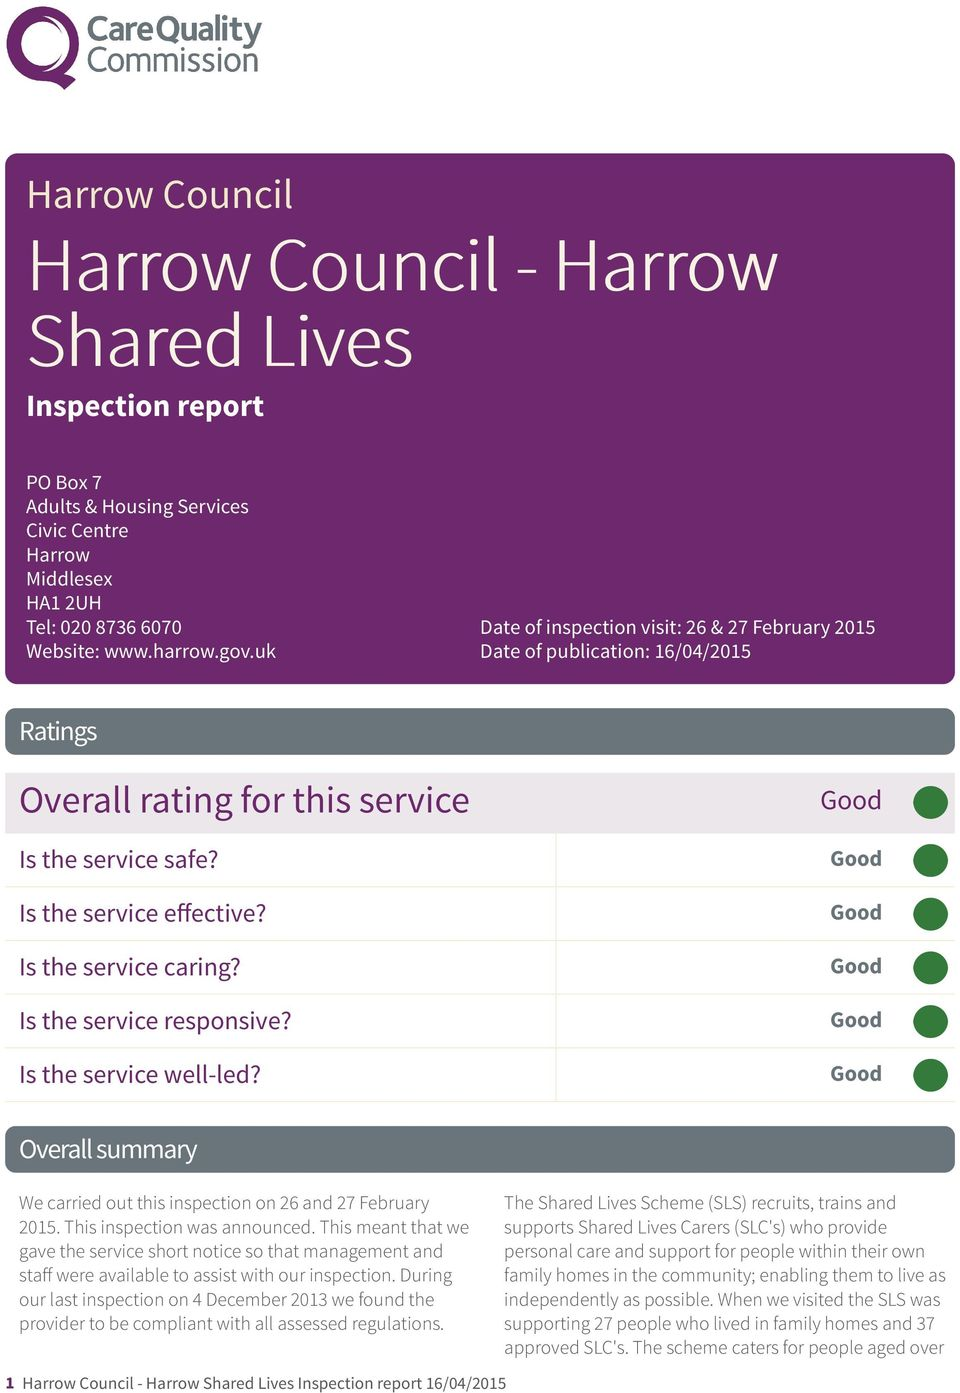 Good Is the service caring? Good Is the service responsive? Good Is the service well-led? Good Overall summary We carried out this inspection on 26 and 27 February 2015. This inspection was announced.